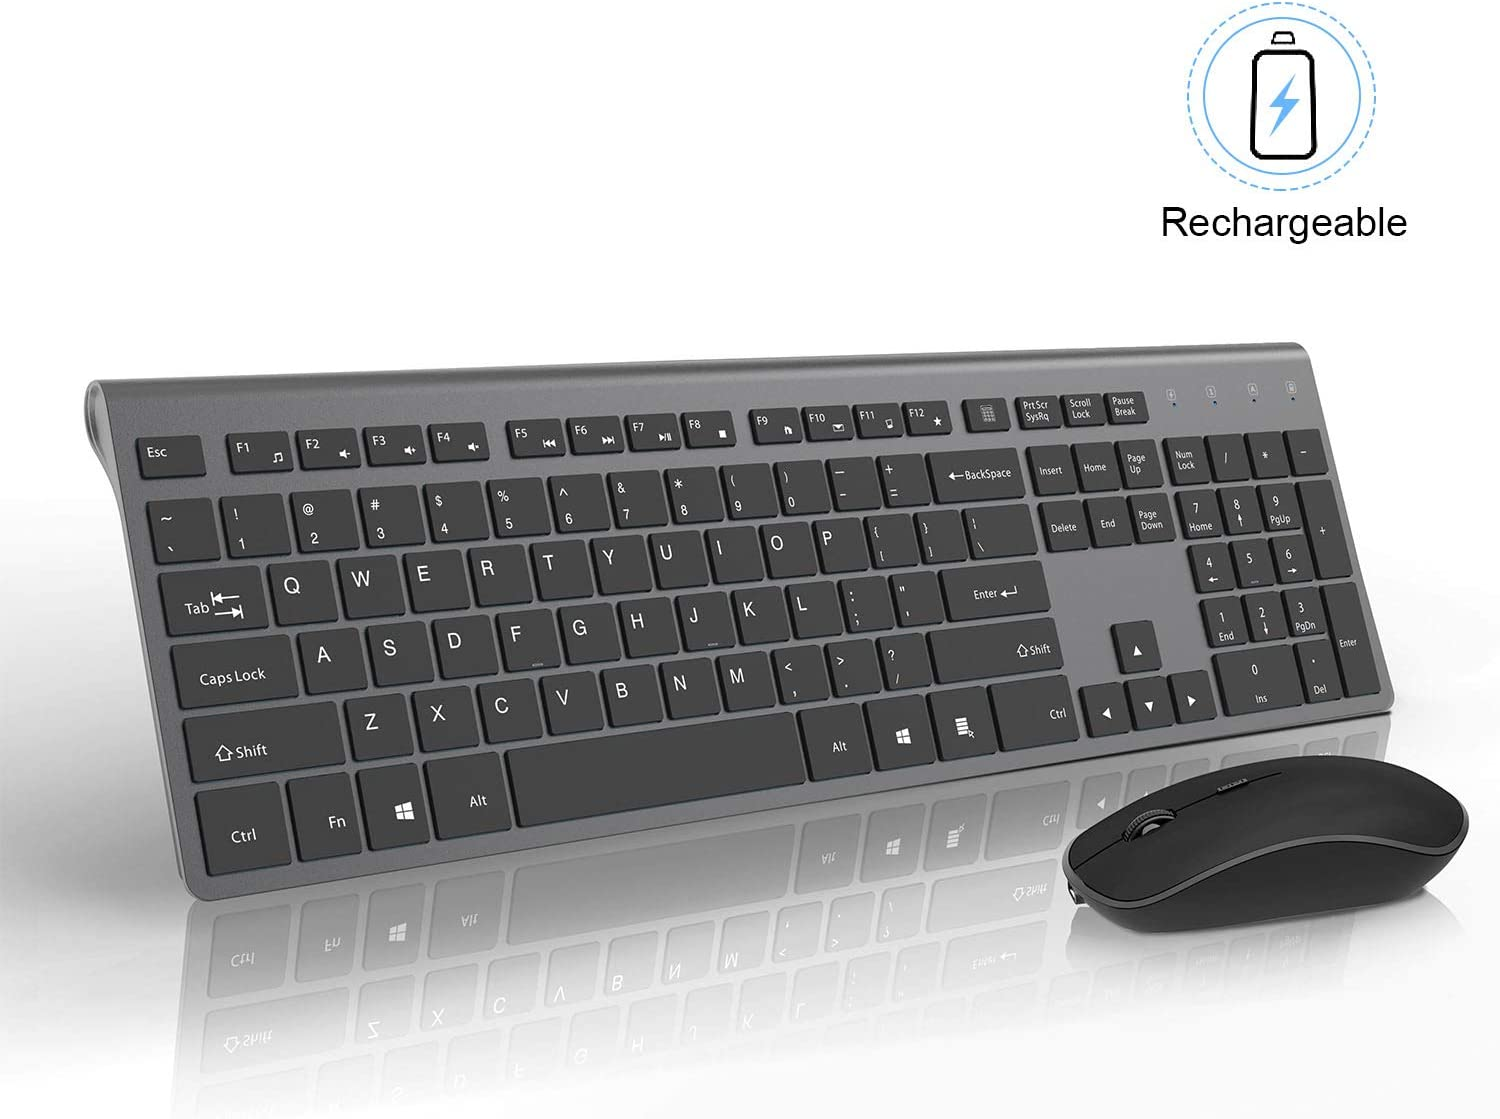 Rechargeable Wireless Keyboard and Mouse Combo-J JOYACCESS Portable Ergonomic Full Size Keyboard and Mouse,2.4GHz Stable Connection,Silent Mouse for Desktop and Laptop-Dark Grey